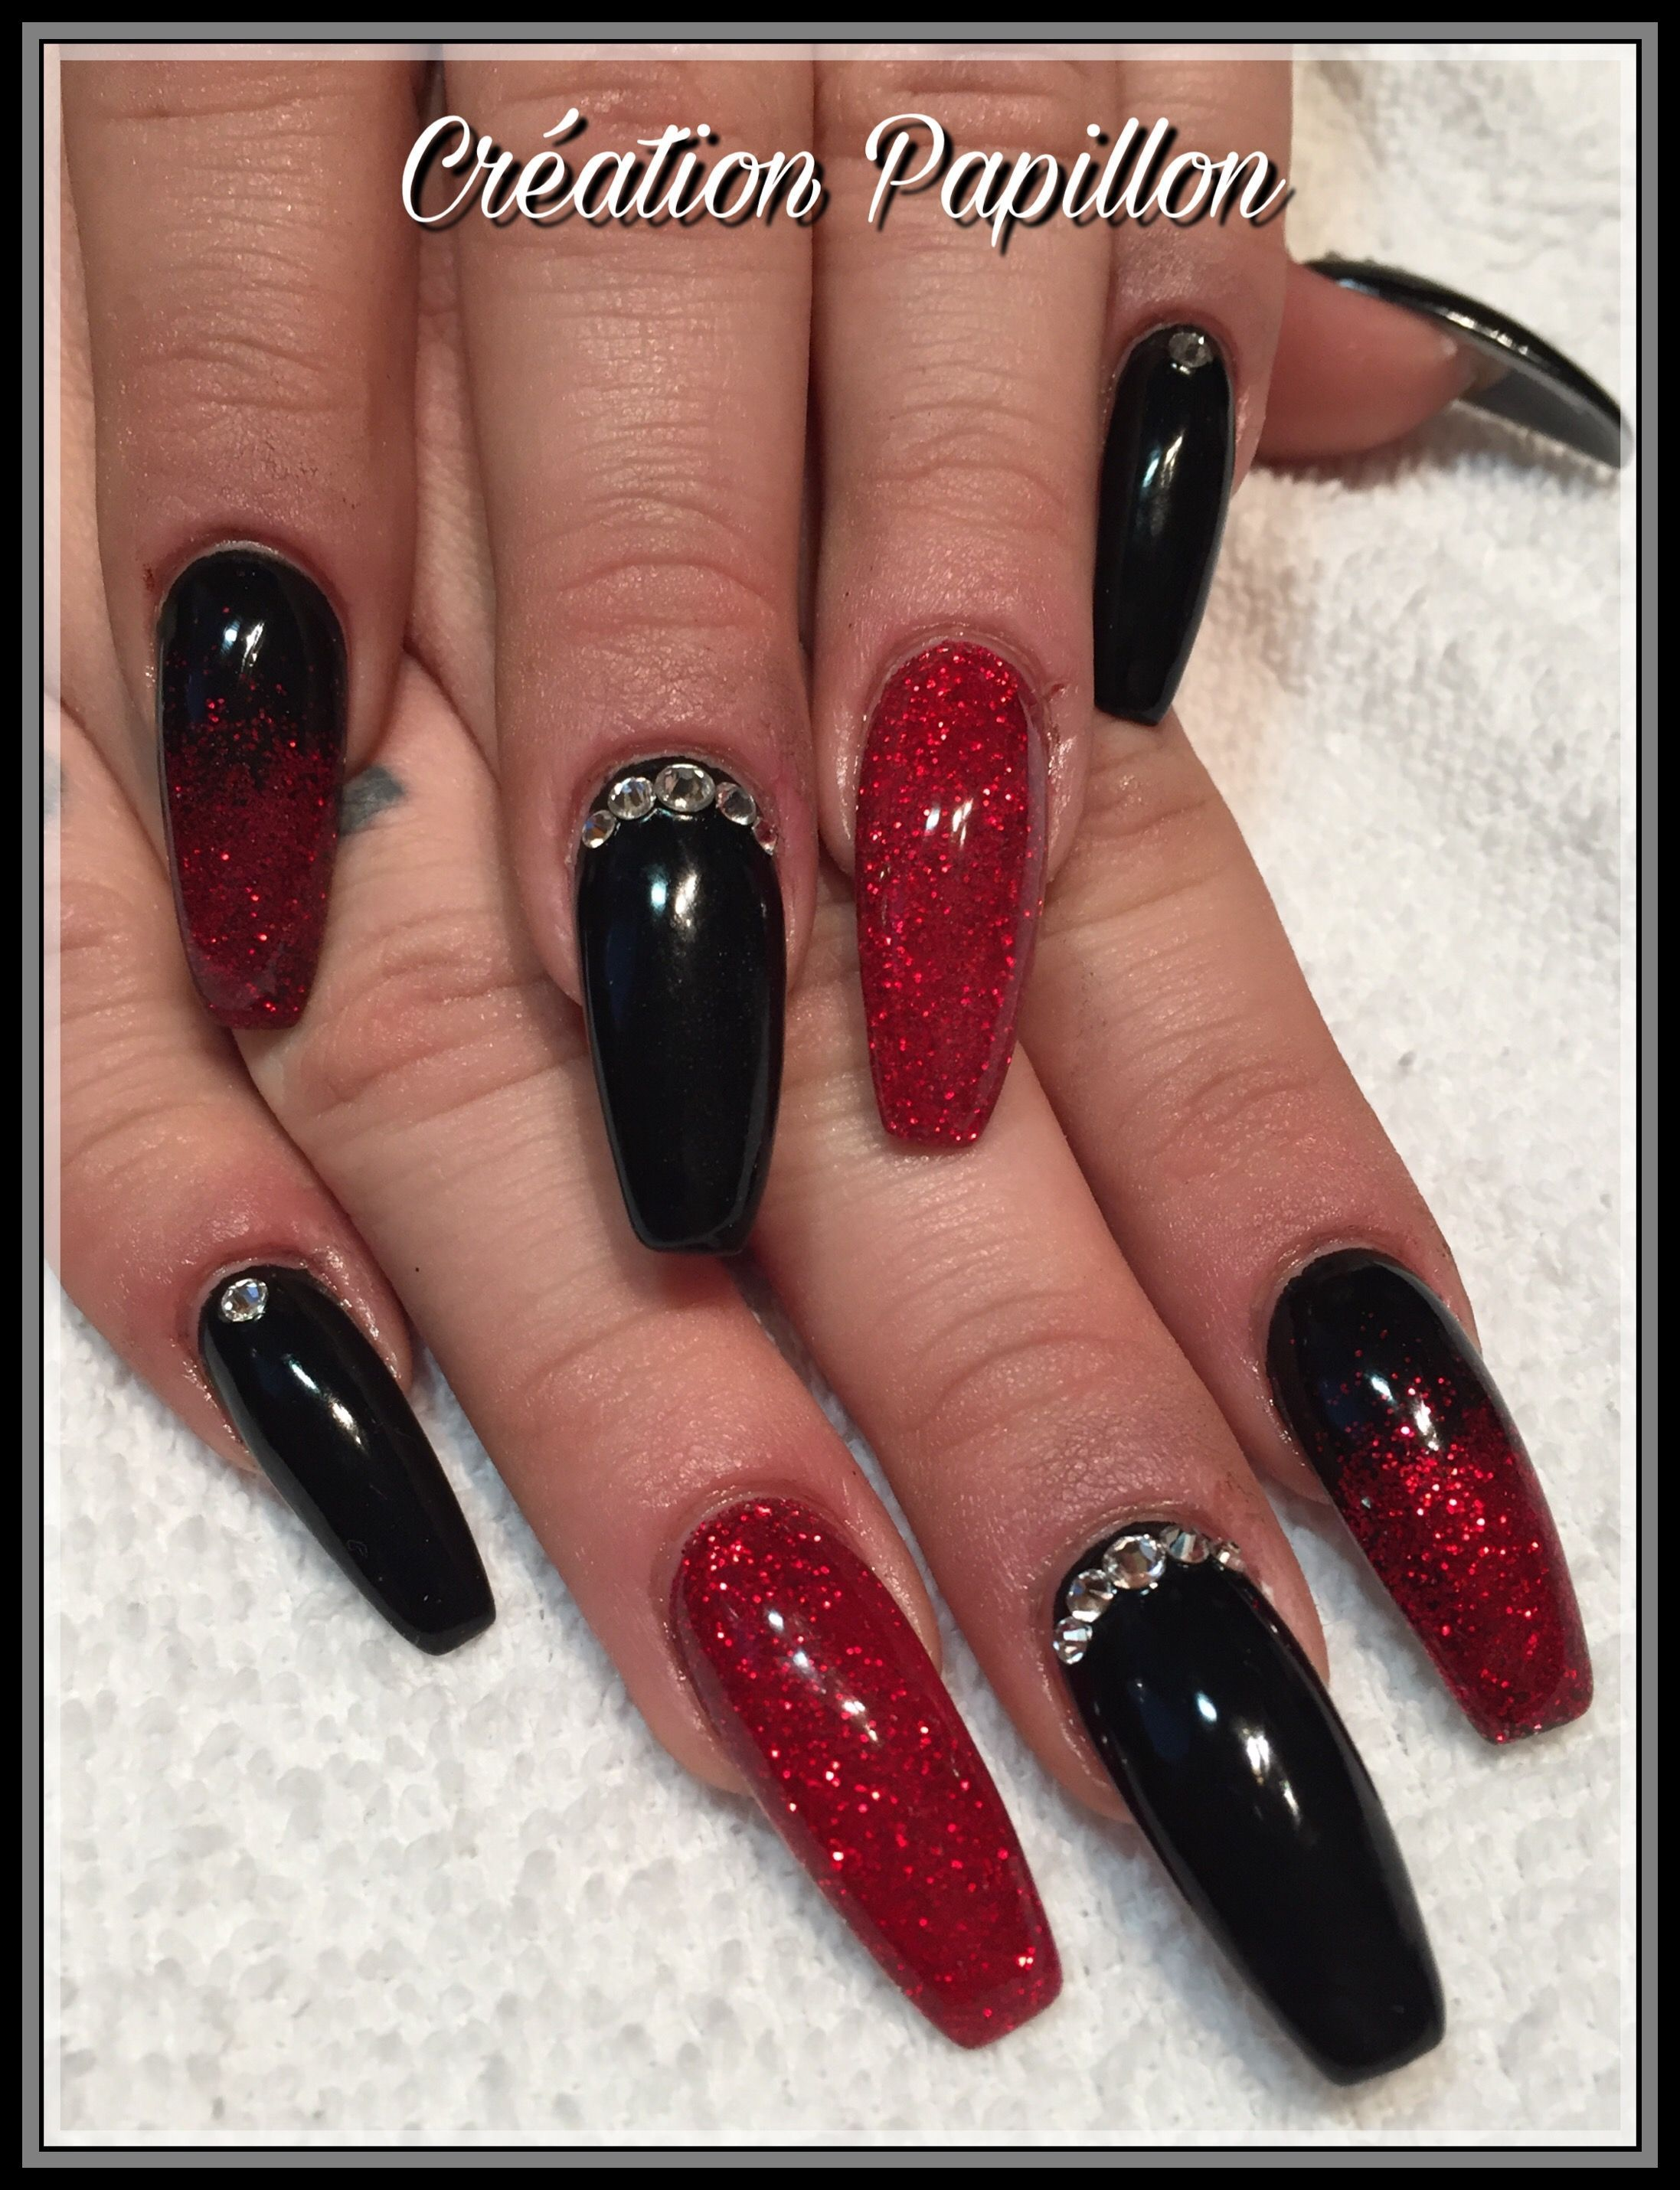 Untitled In 2020 Red Nails Glitter Coffin Nails Designs Red Nail Designs